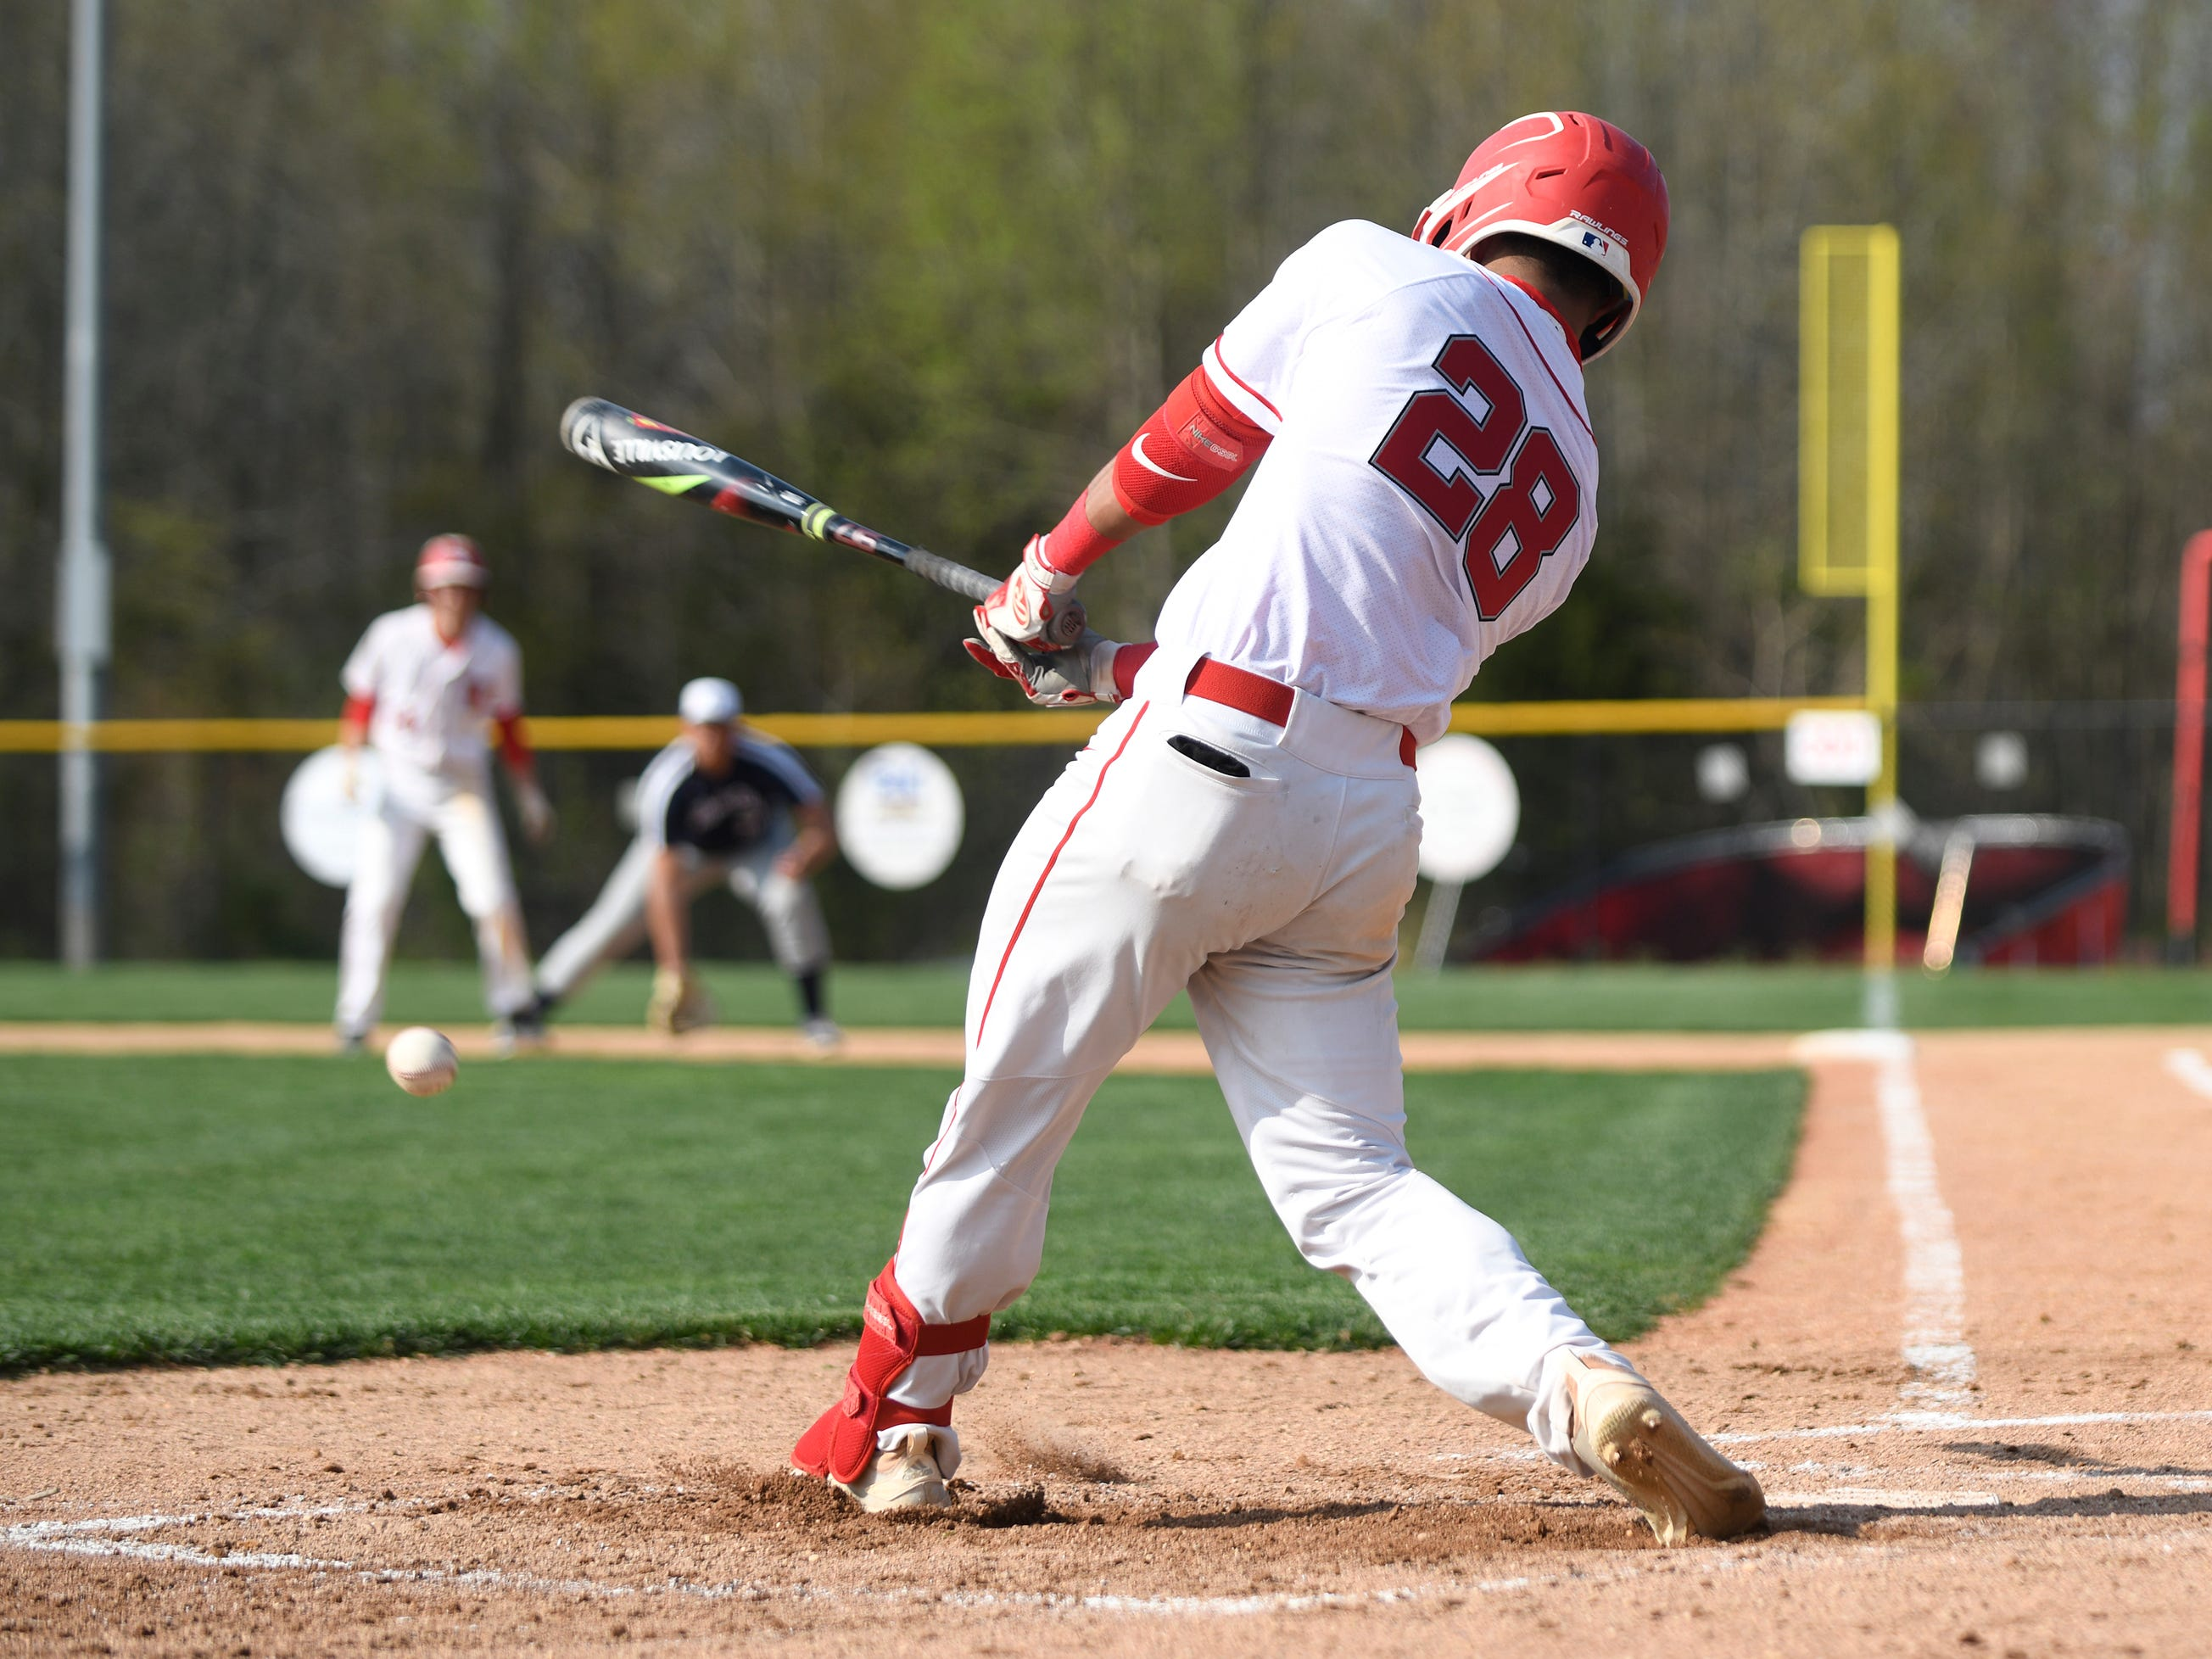 Vineland's Nito Figueroa at bat in a game against visiting Atlantic City on Wednesday. The Fighting Clan topped the Vikings 12-2.